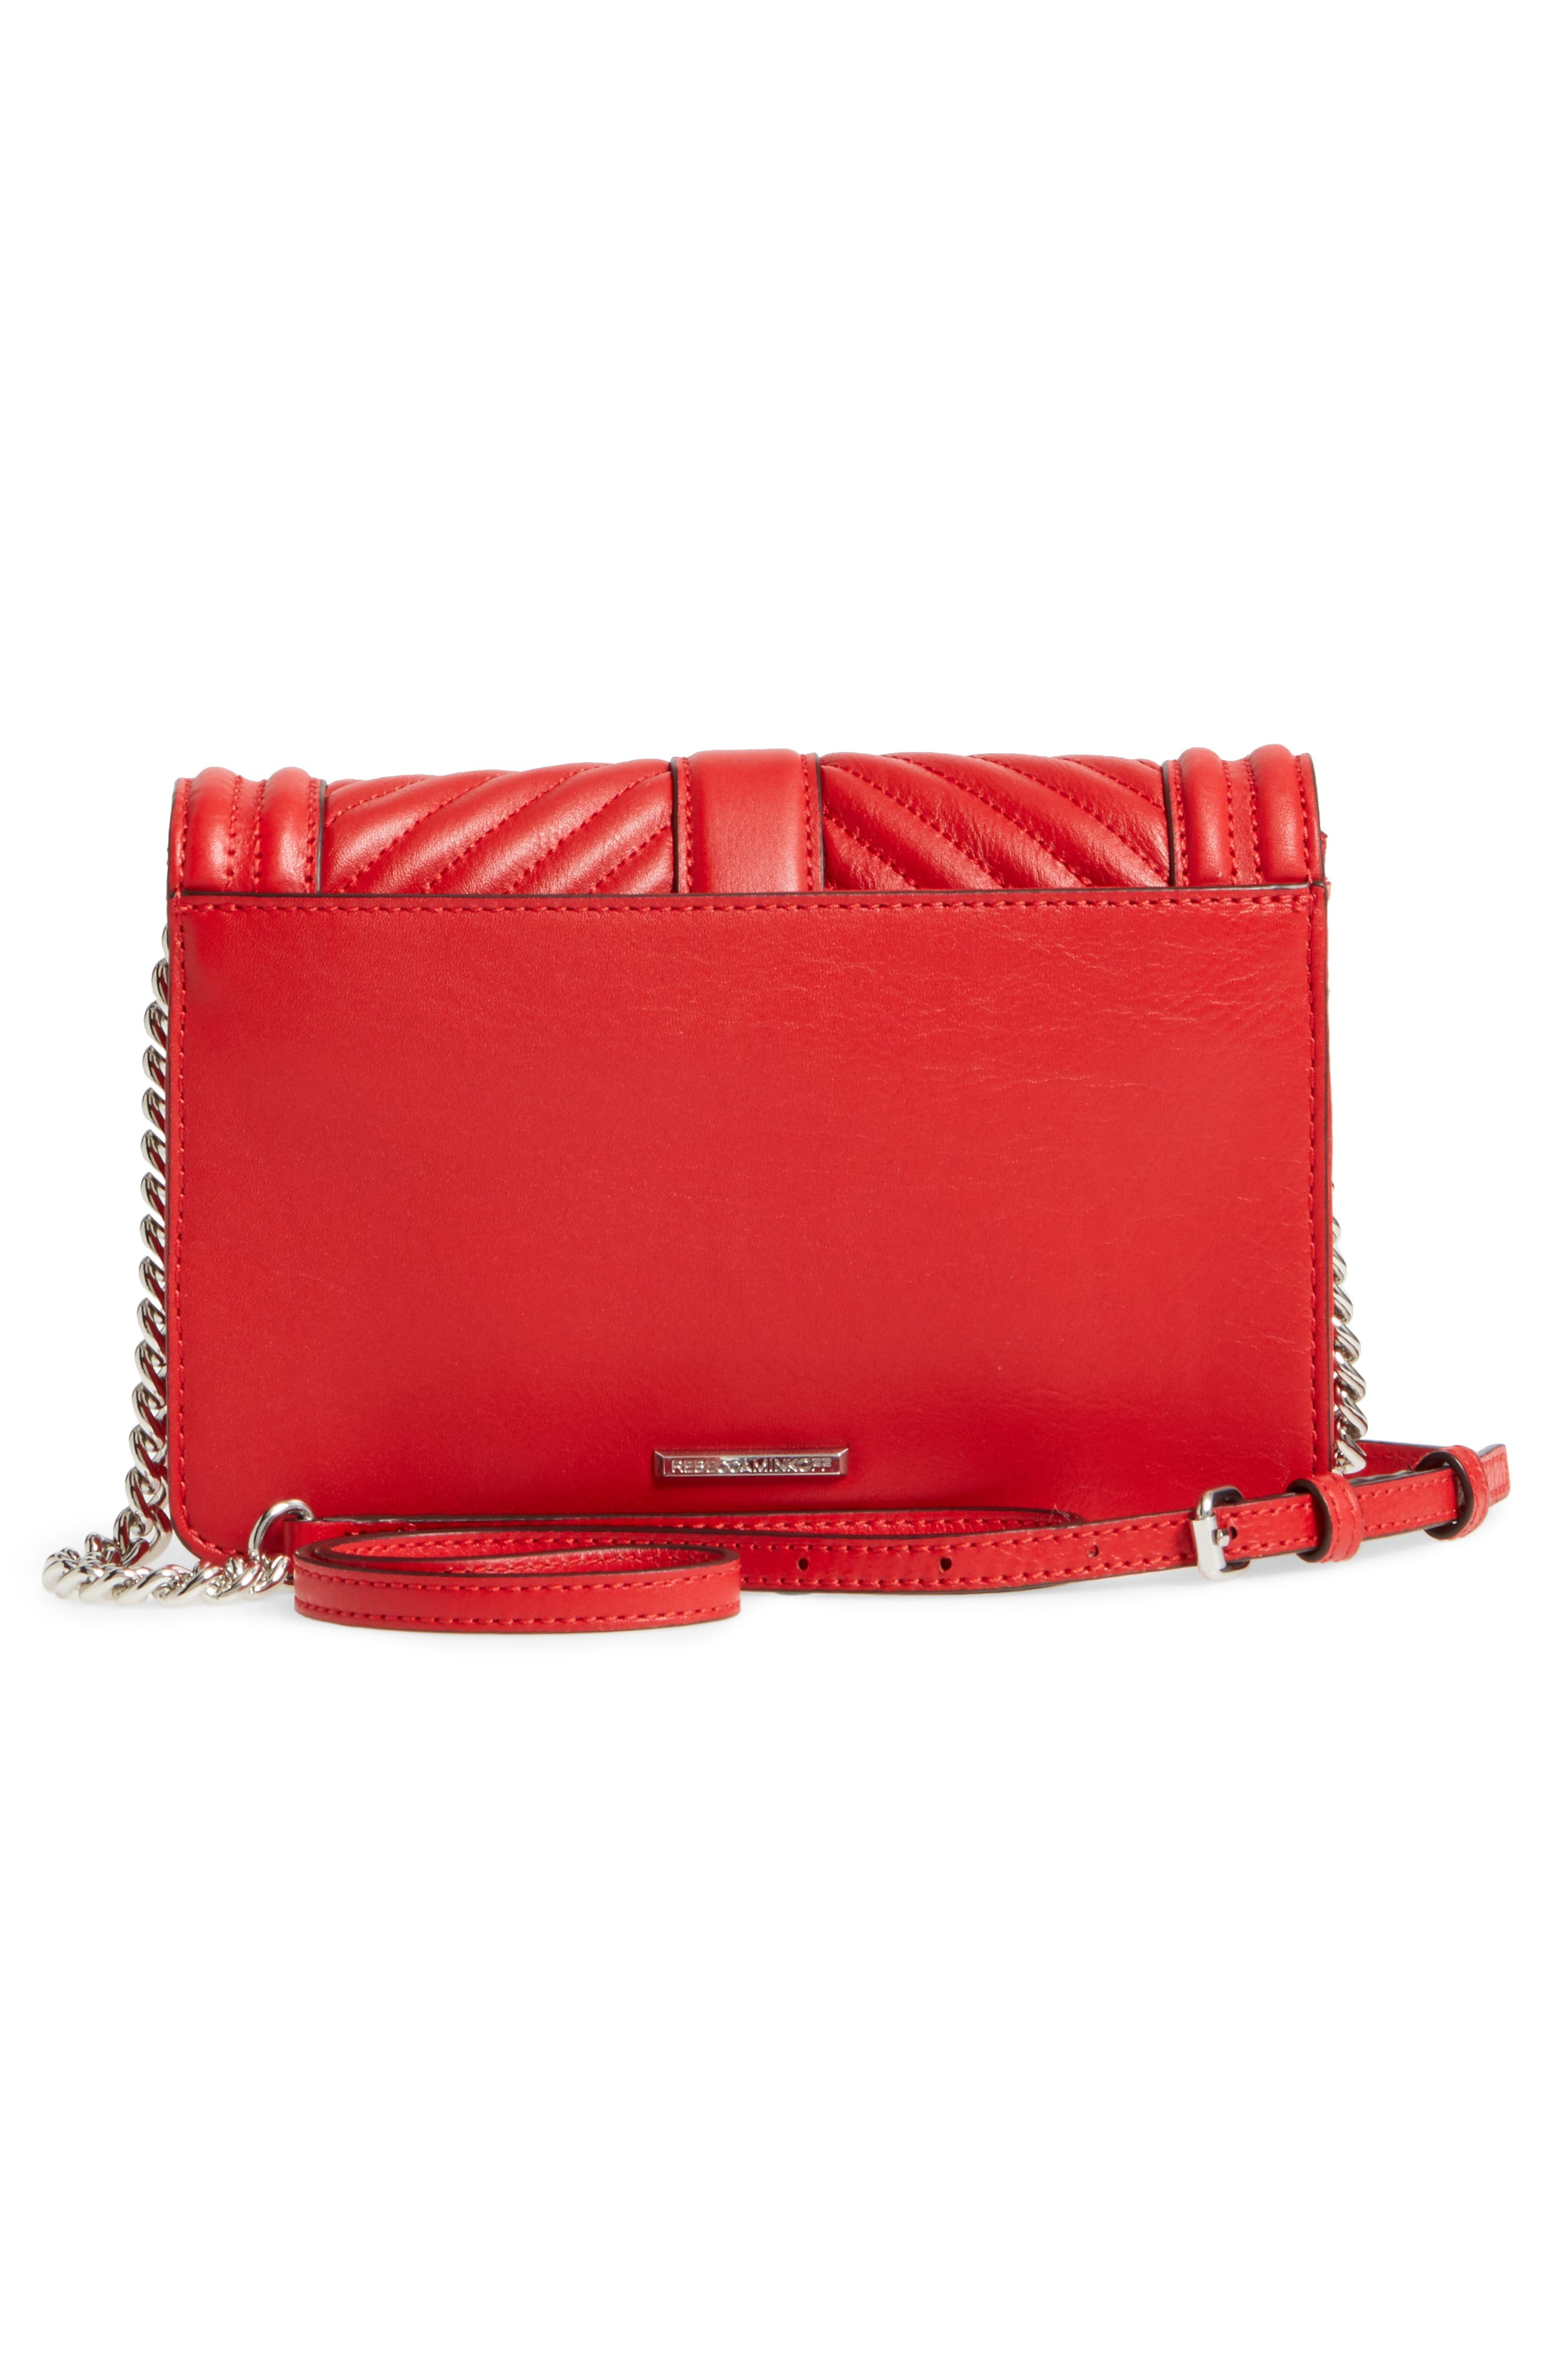 Alternate Image 3  - Rebecca Minkoff Small Love Quilted Leather Crossbody Bag